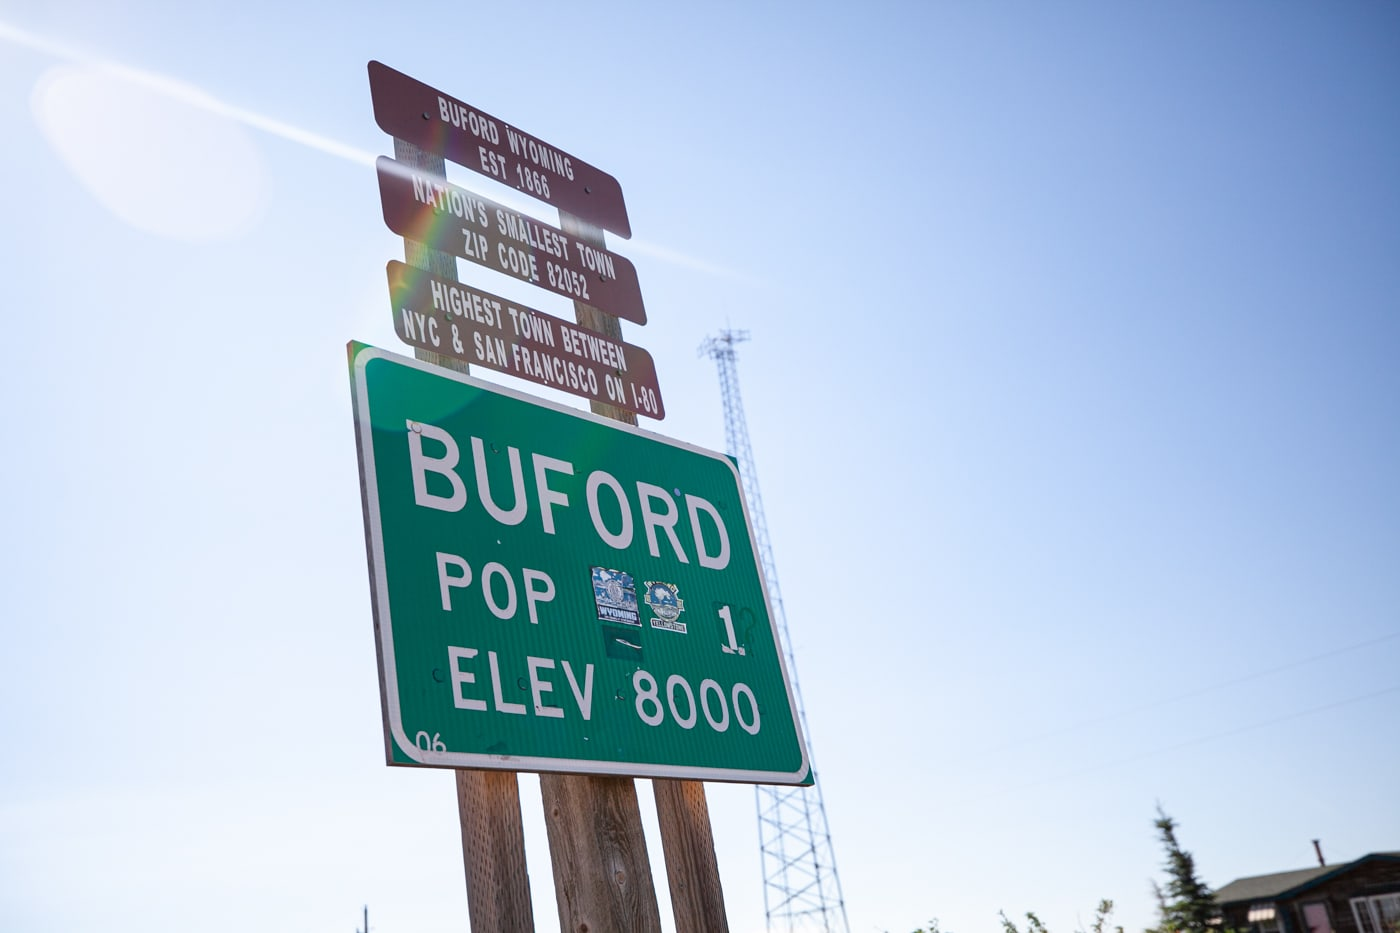 Buford, Wyoming: The Smallest Town in America with a population of 1 | Wyoming Roadside Attractions